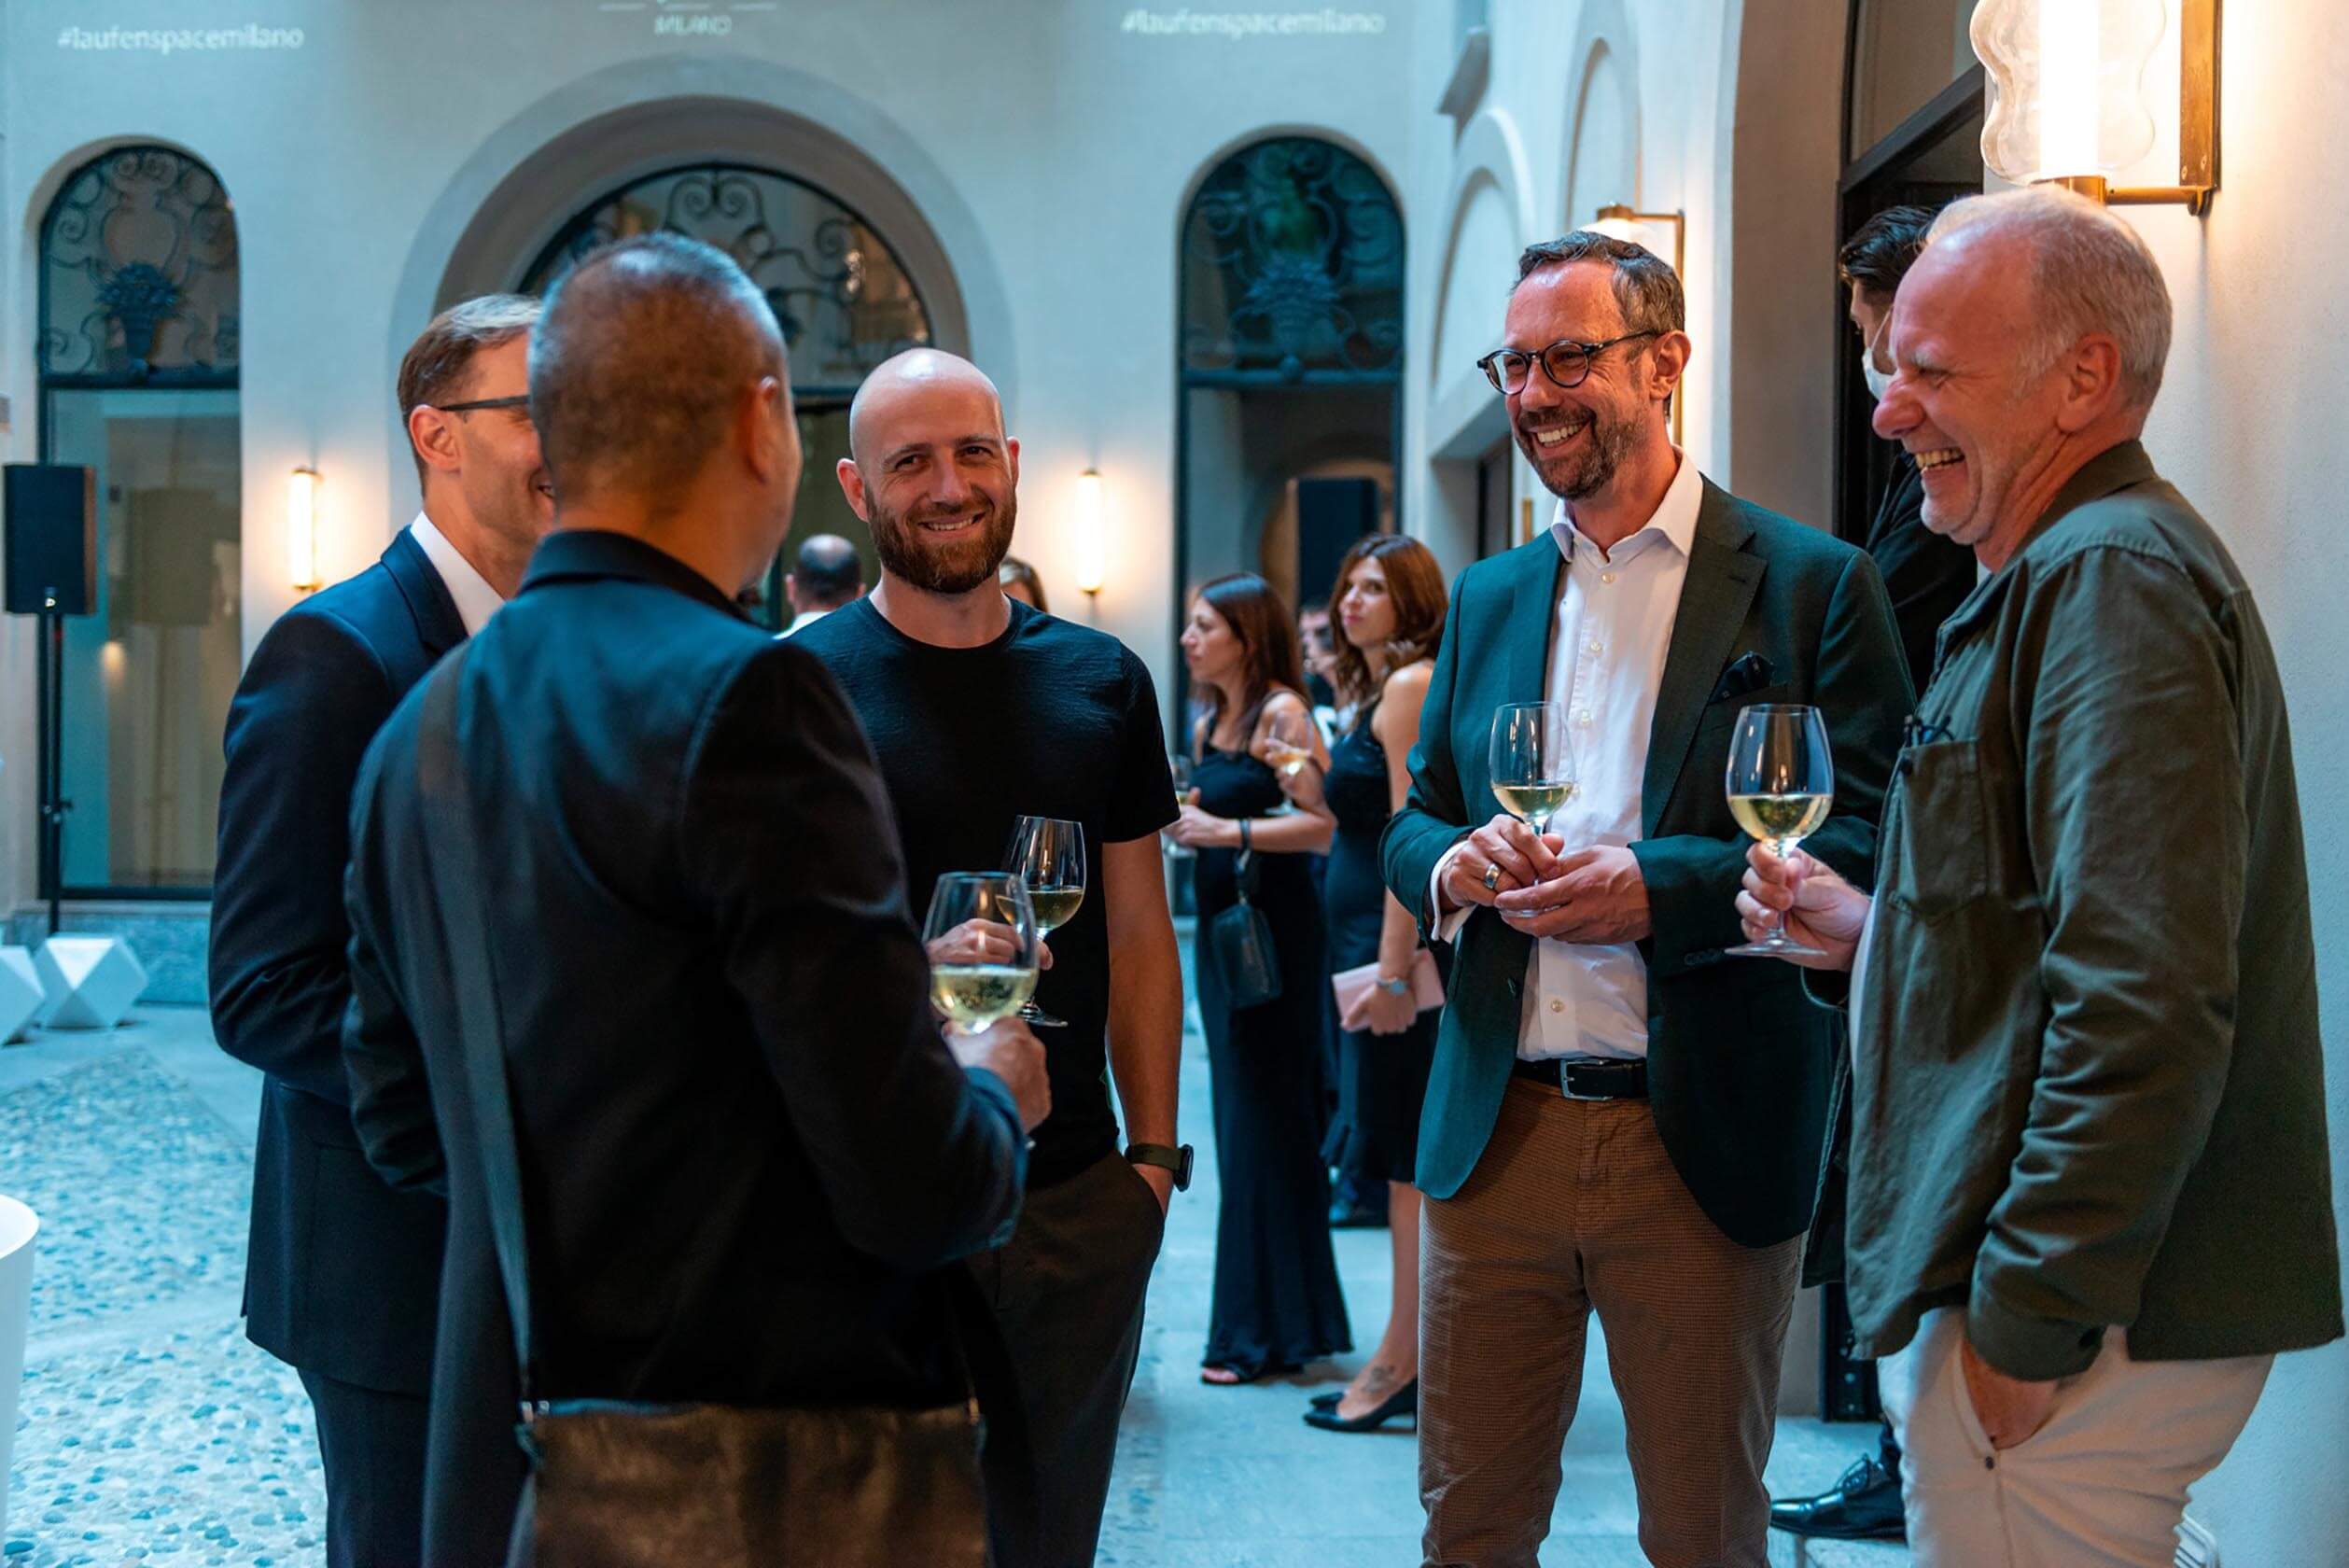 Roger Furrer among other chatting in square during Laufen space Milano event.